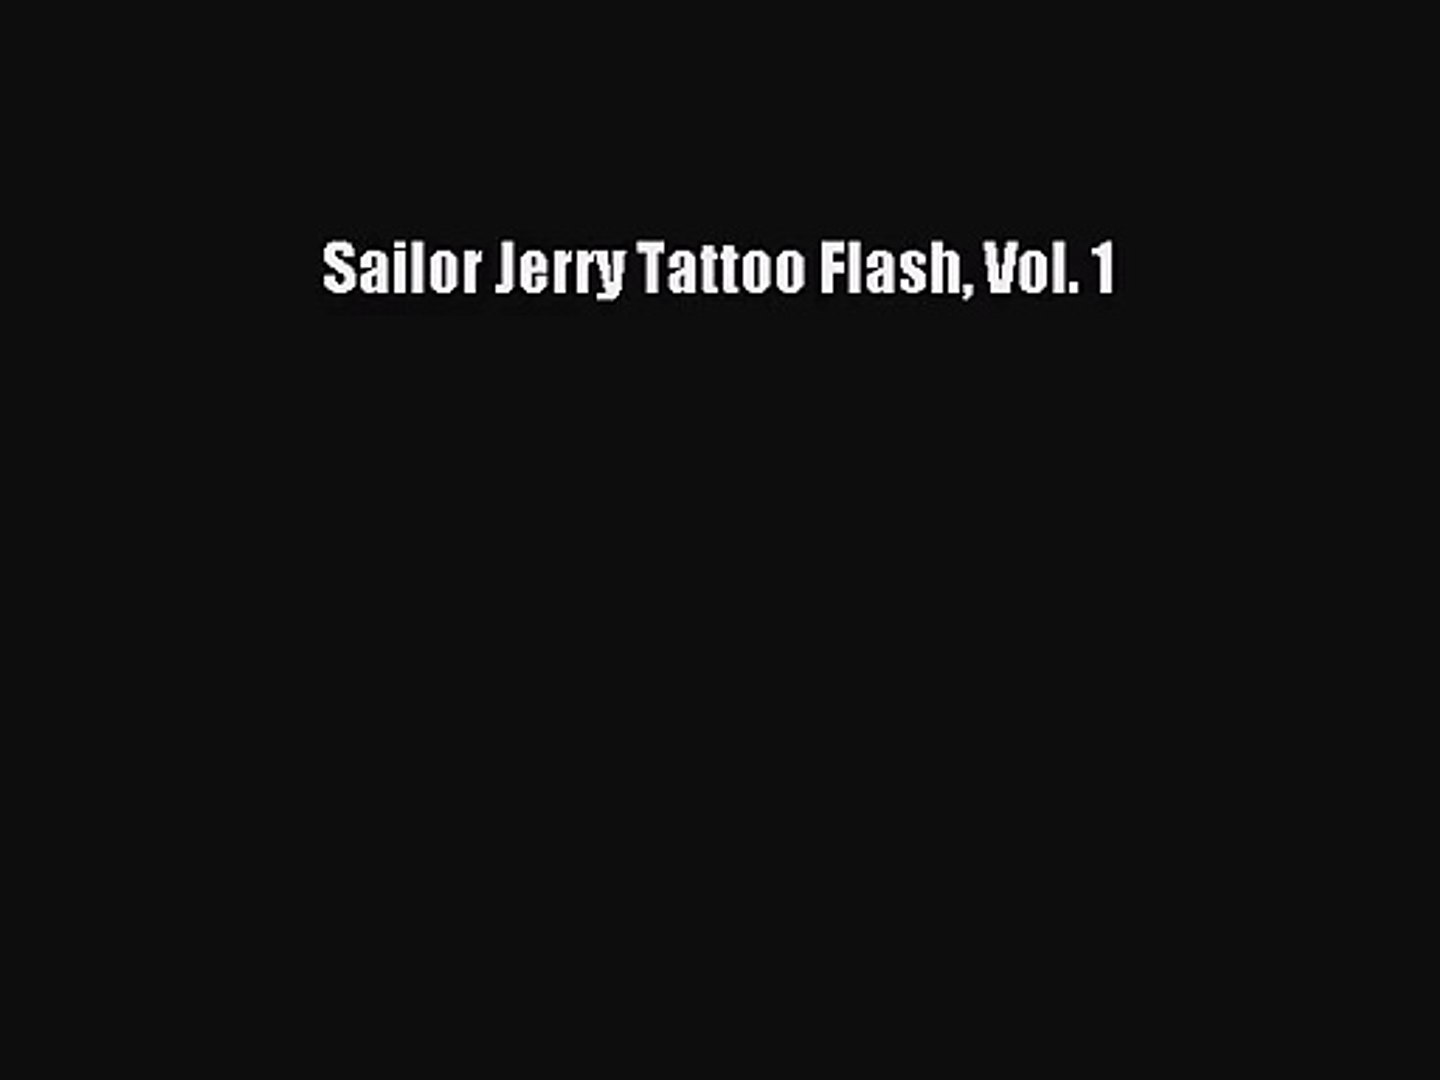 Pdf Download Sailor Jerry Tattoo Flash Vol 1 Download Video Dailymotion